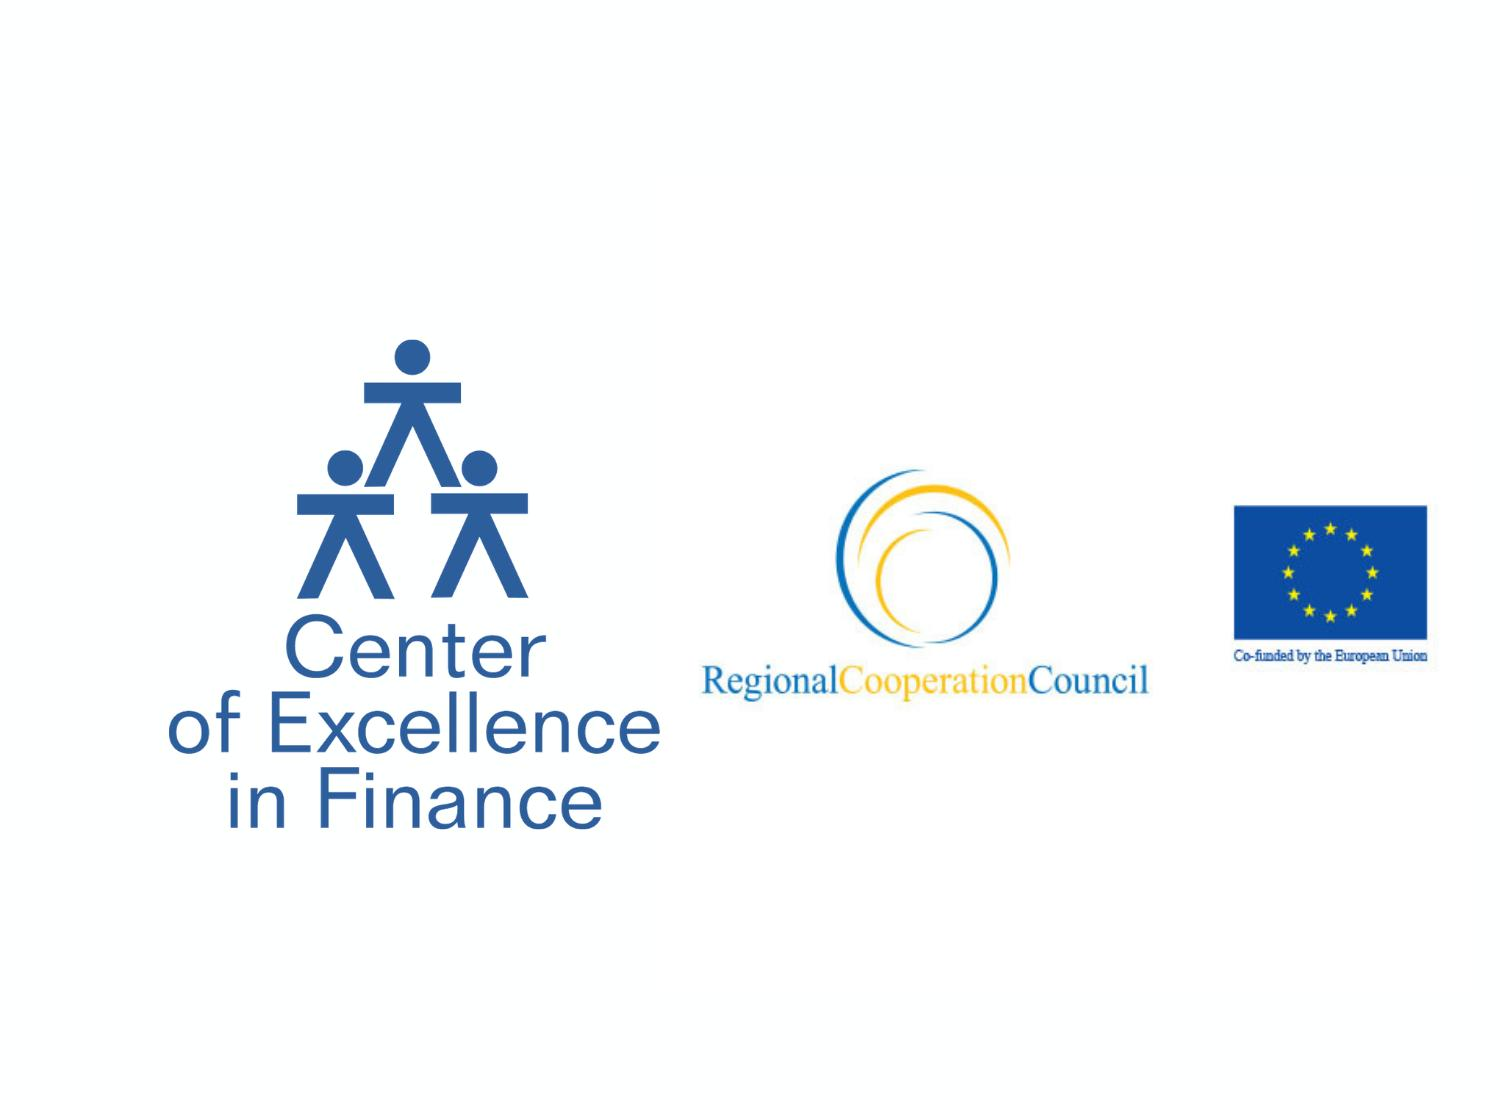 RCC and Center of Excellence in Finance signed MoU